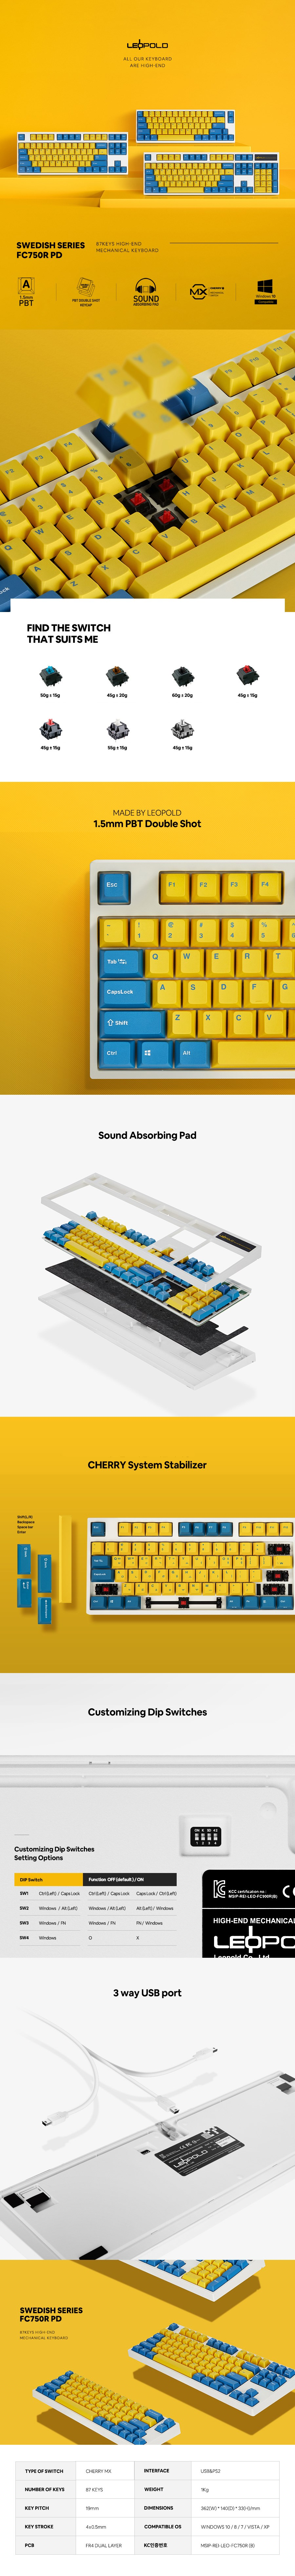 Leopold FC750R Yellow/Blue White TKL Mechanical Keyboard - Overview 1